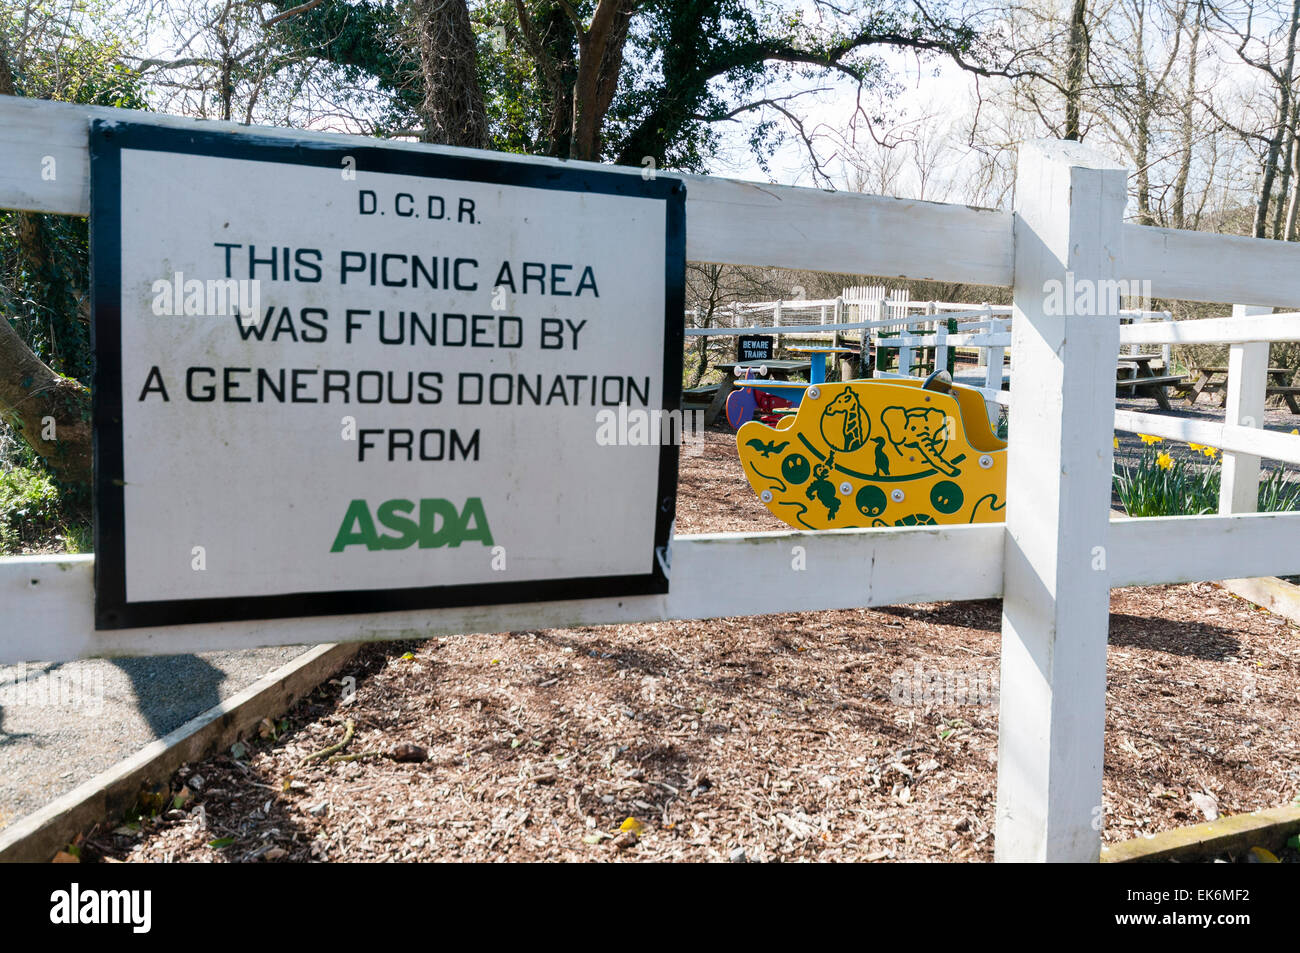 Sign 'This picnic area was funded by a generous donation from Asda' - Stock Image